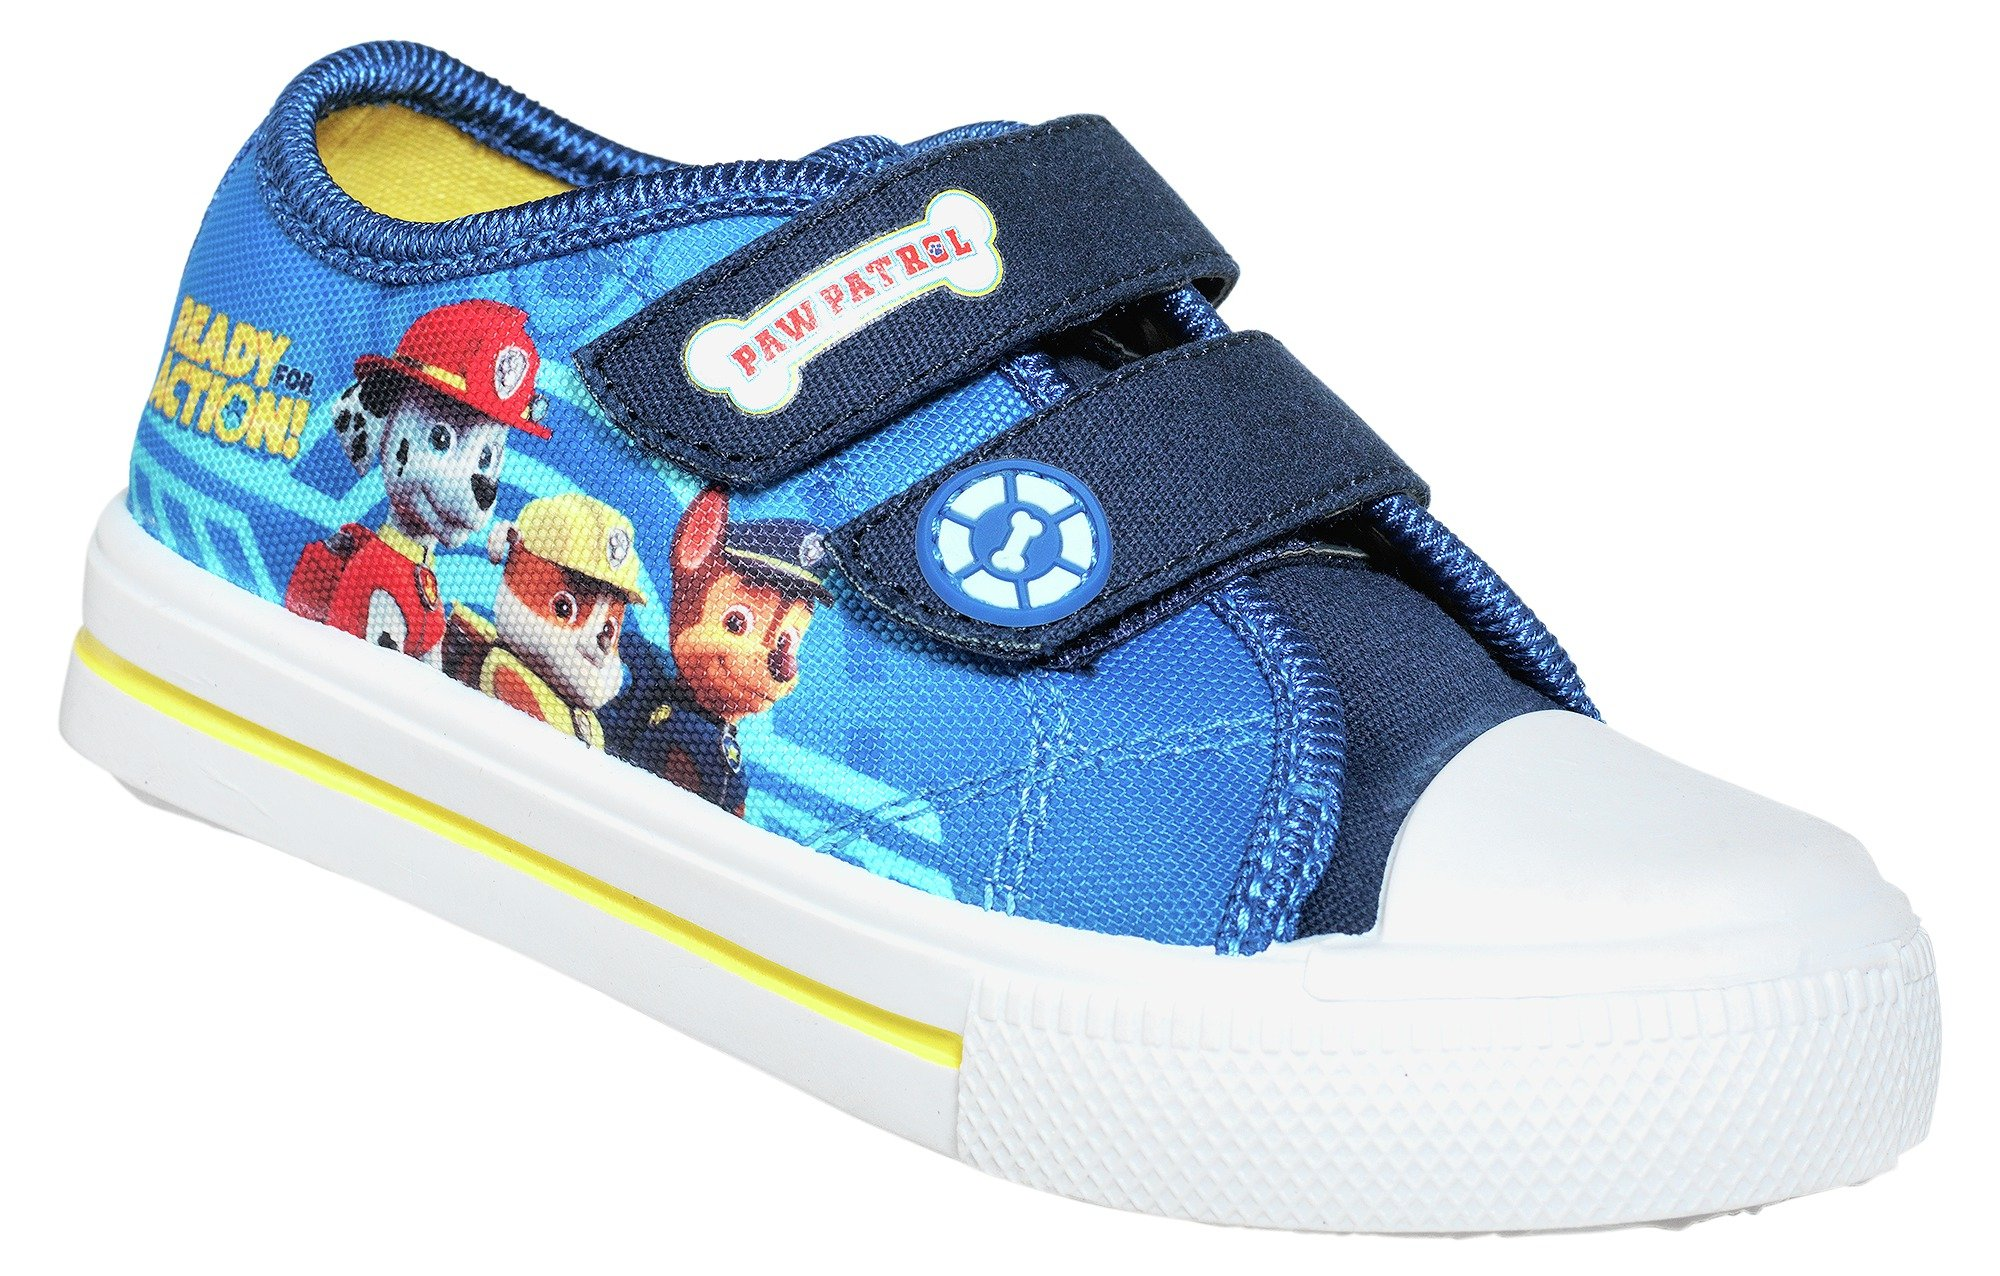 Image of Paw Patrol - Boys Blue Canvas Trainers - Size 5